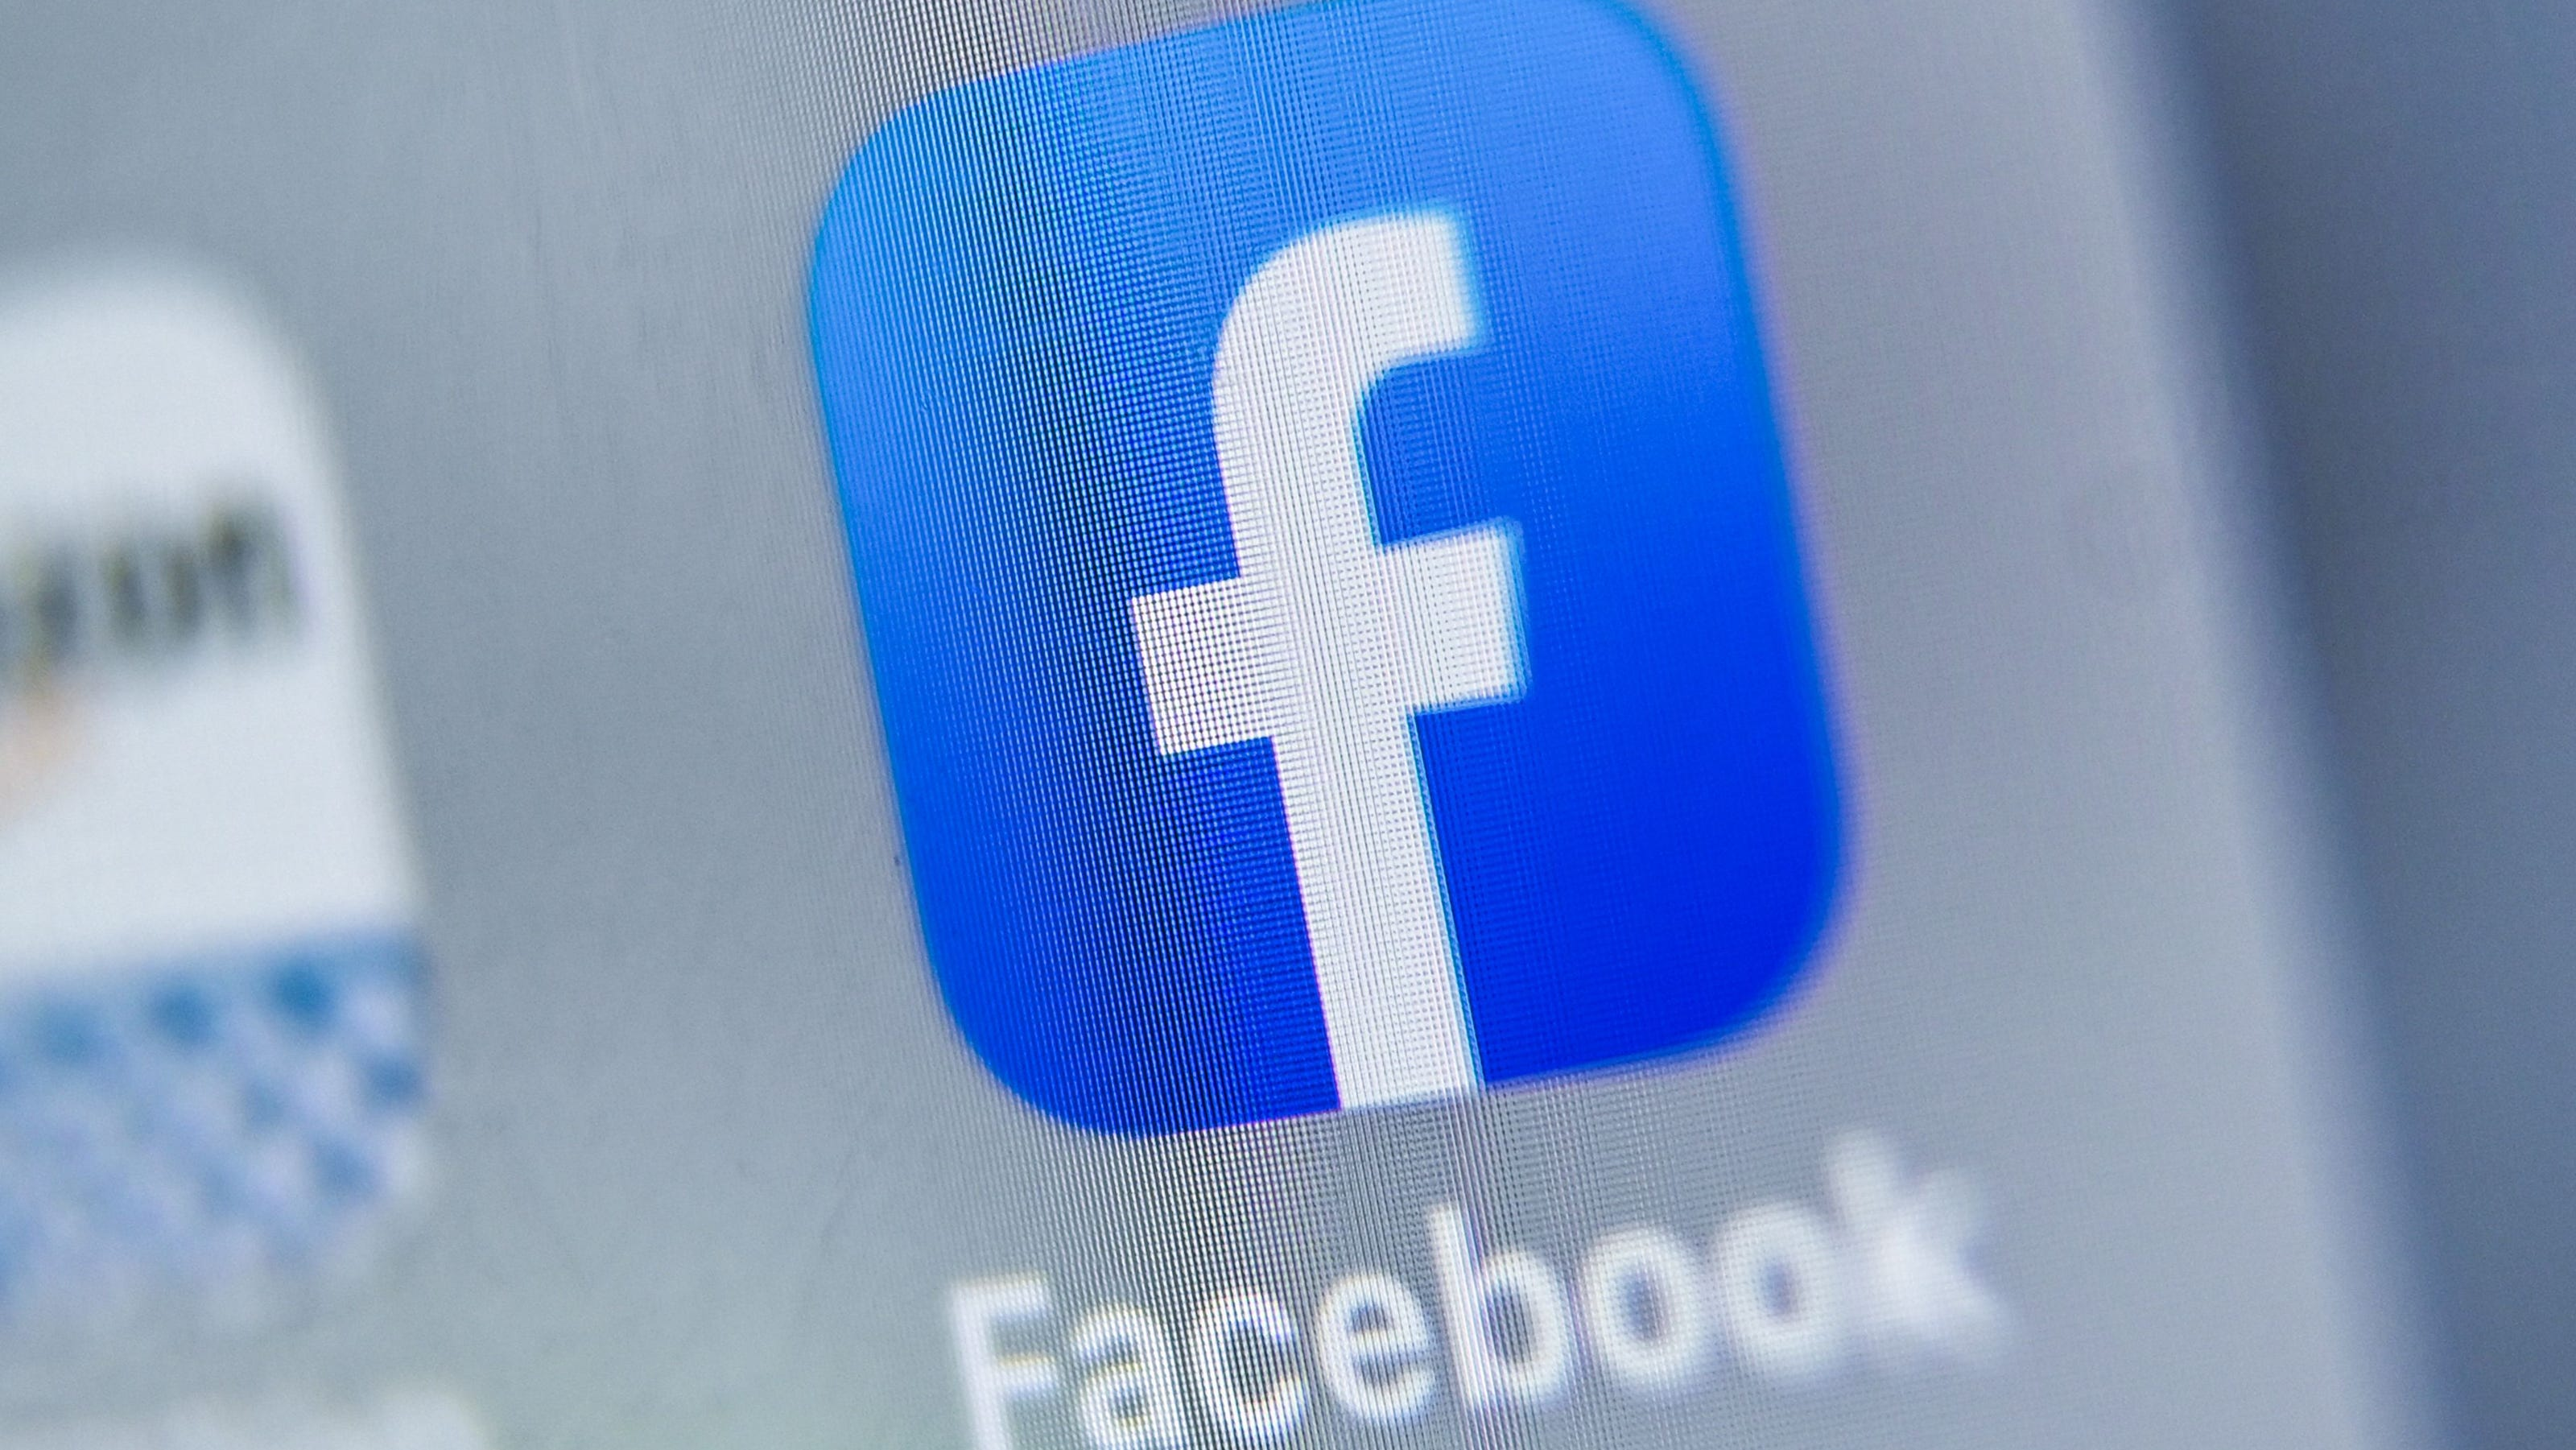 Facebook Extreme Far Right Politics And Lies Are Popular Study Says